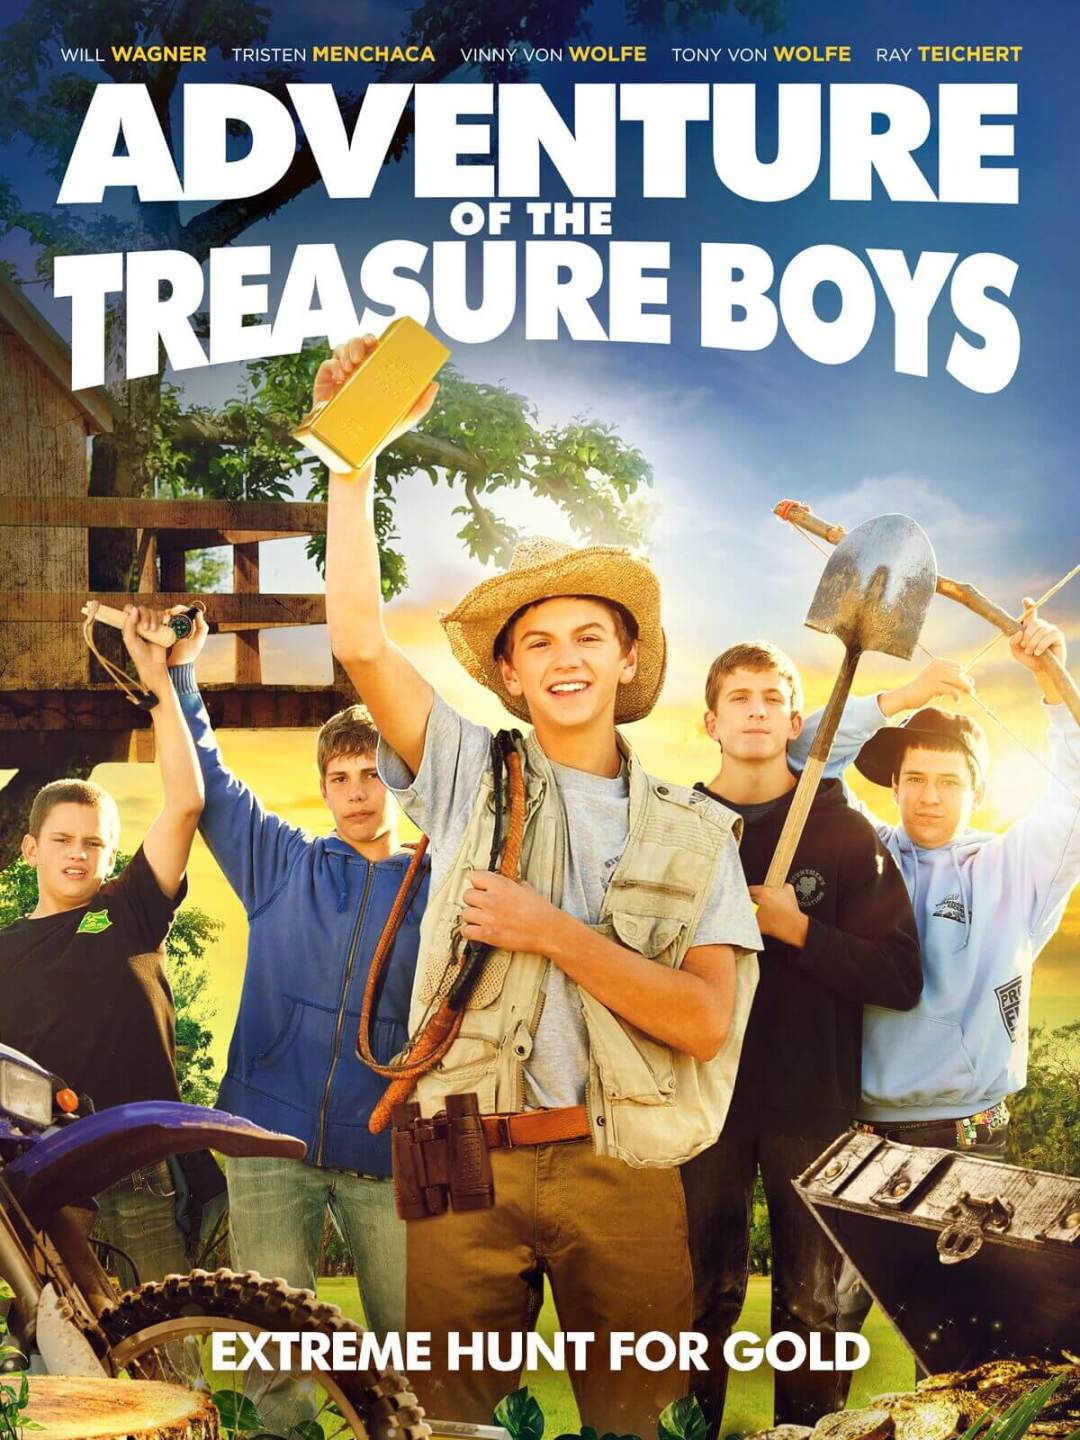 ADVENTURE OF THE TREASURE BOYS